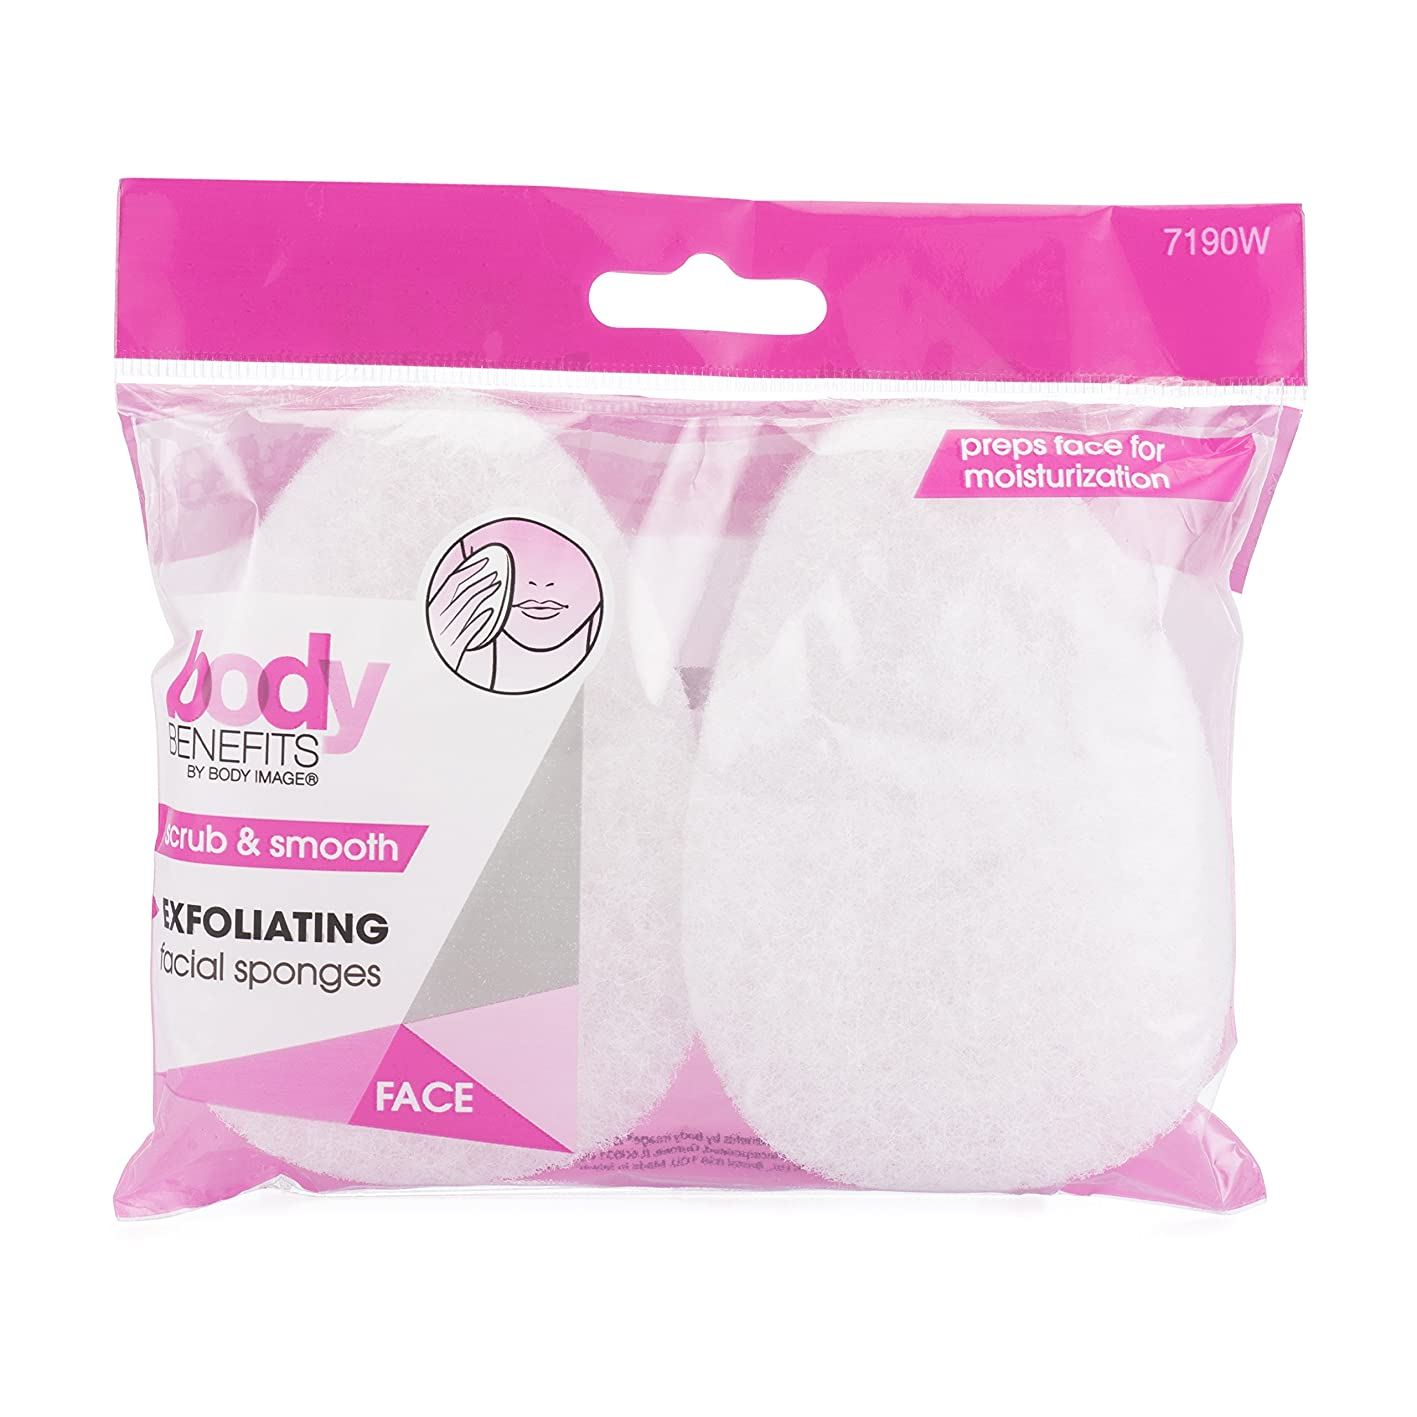 Body Benefits Exfoliating Facial Scrub Sponges, 0.03 Pound (Pack of 36), for Improved Facial Cleansing, Circulation and a Smoother, Healthier Look, Self Care Through Skin Care ayrsbbgsegy130